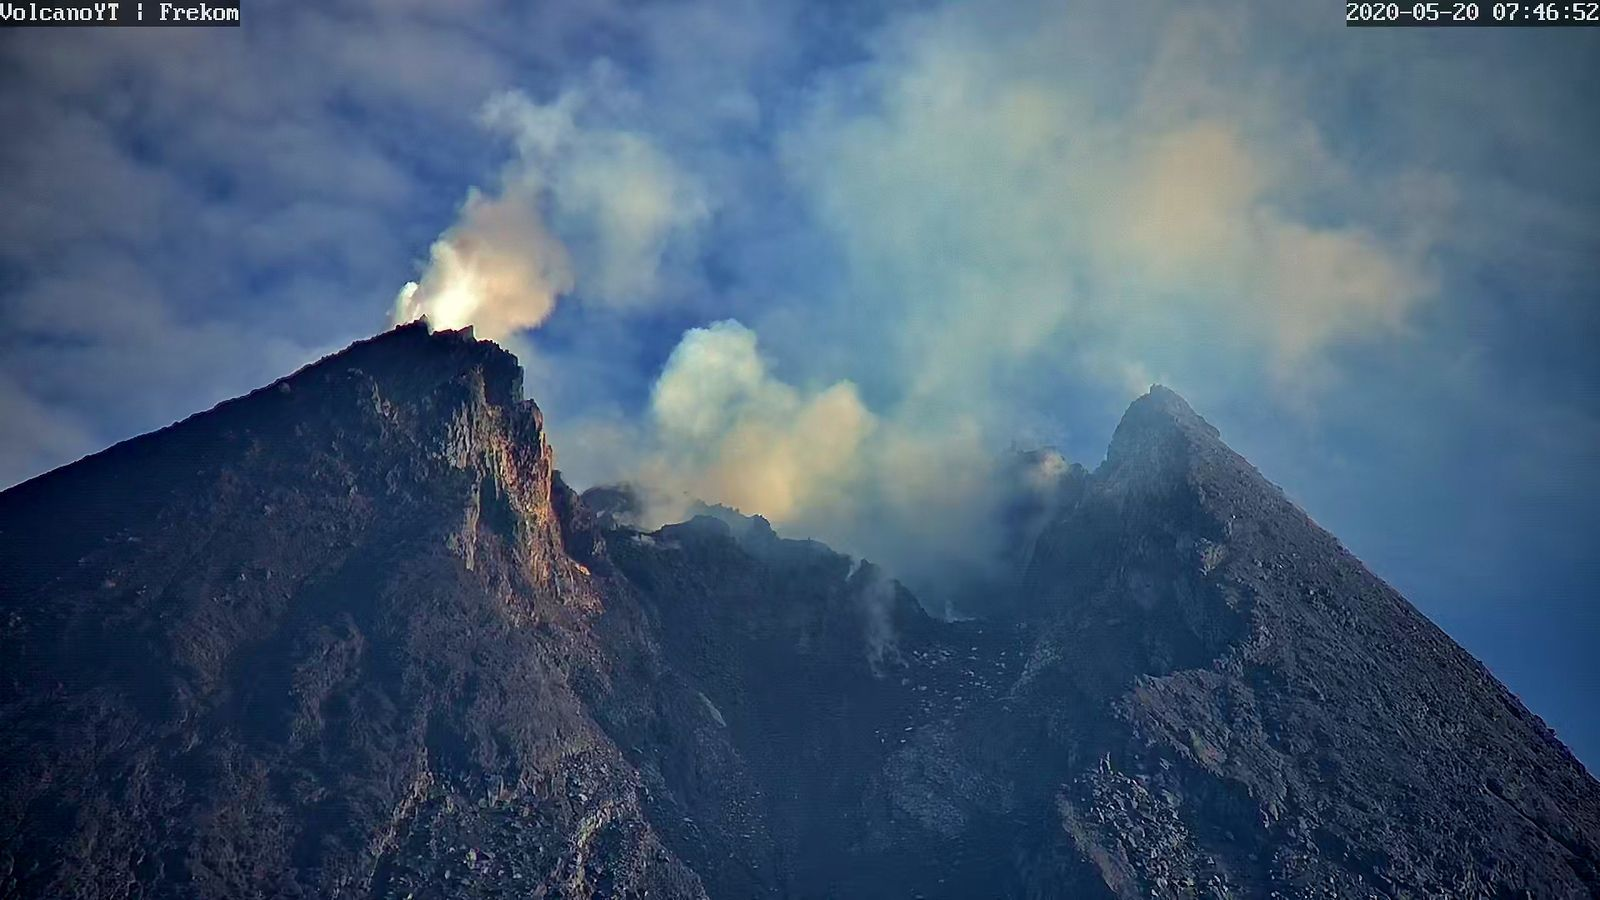 Merapi- the summit and the dome on May 20, 2020 / 07:46 - Doc. Volcano YT i Frekom